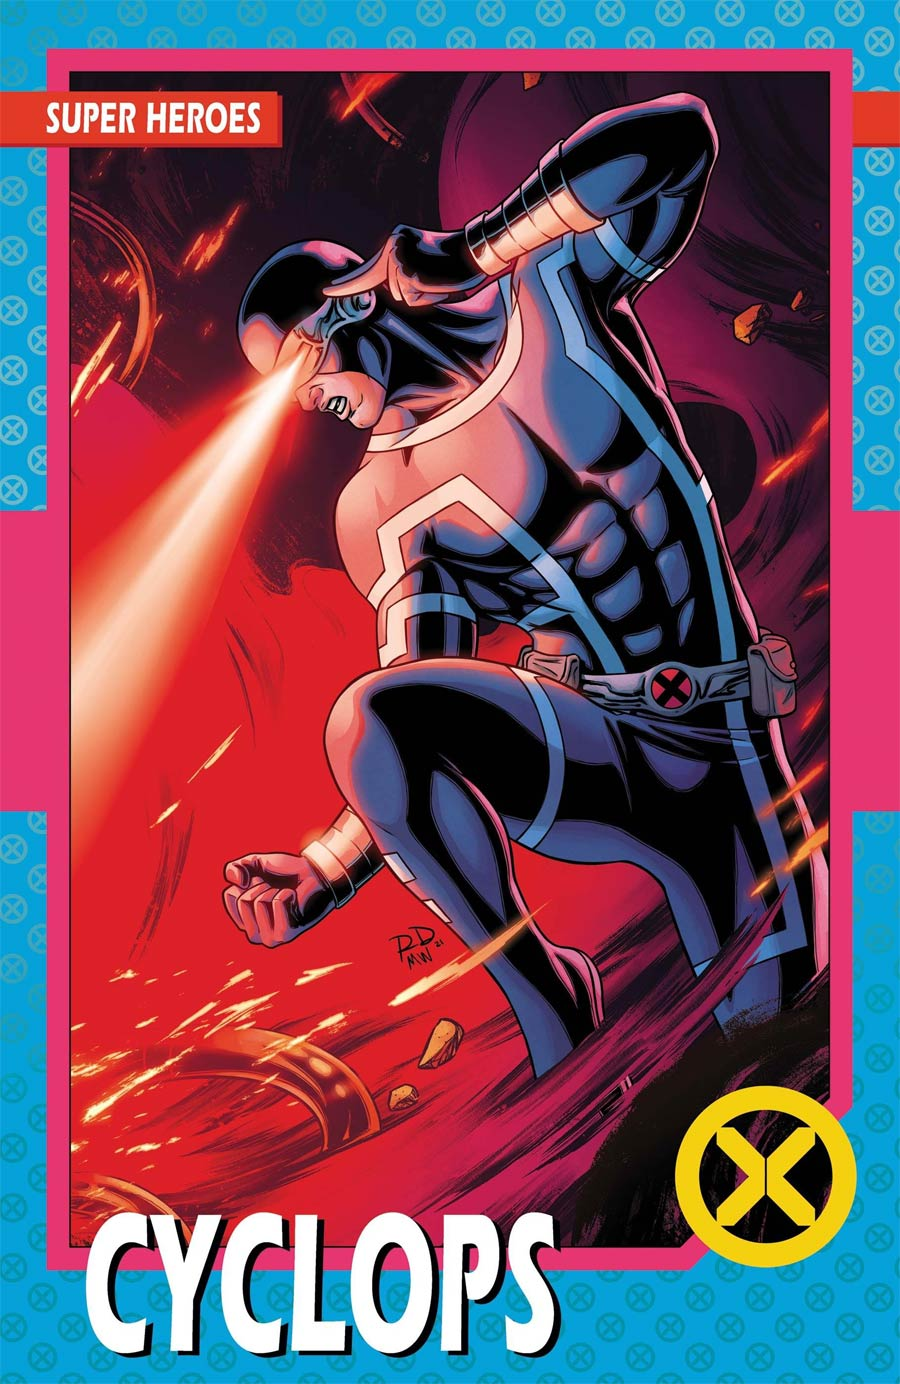 X-Men Vol 6 #1 Cover C Variant Russell Dauterman New Line-Up Trading Card Cover